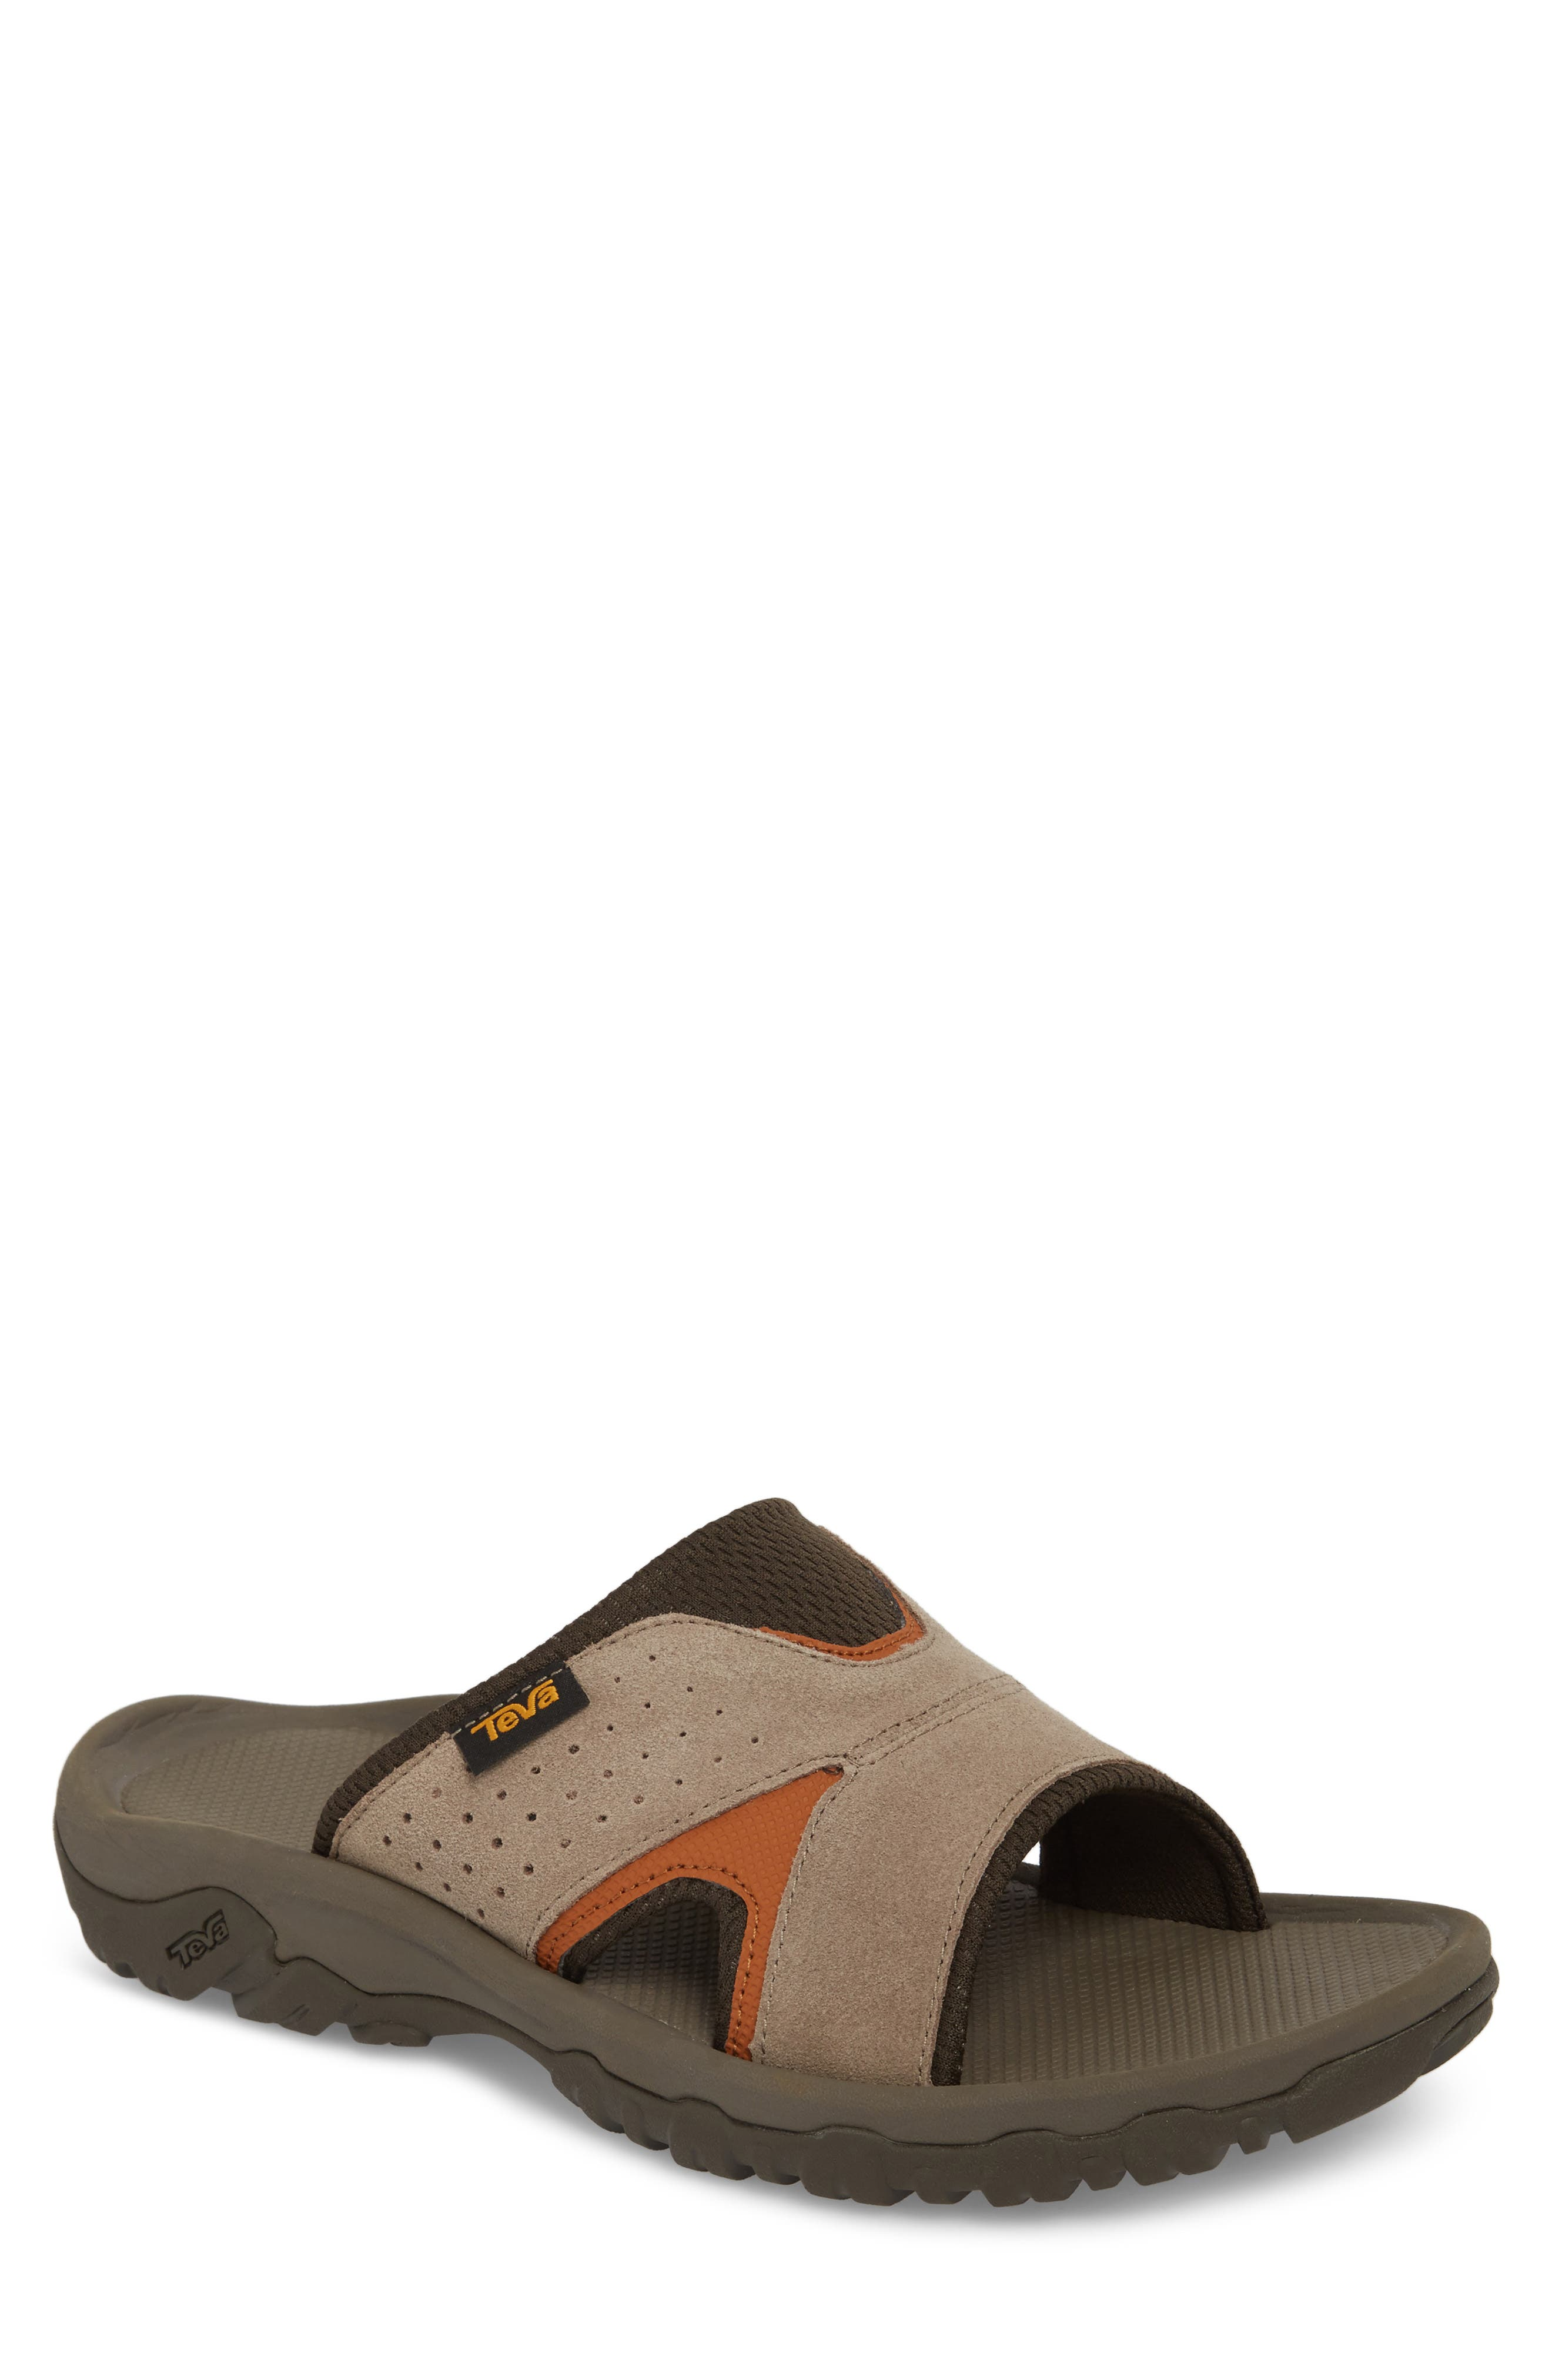 Teva Katavi 2 Slide Sandal (Men)